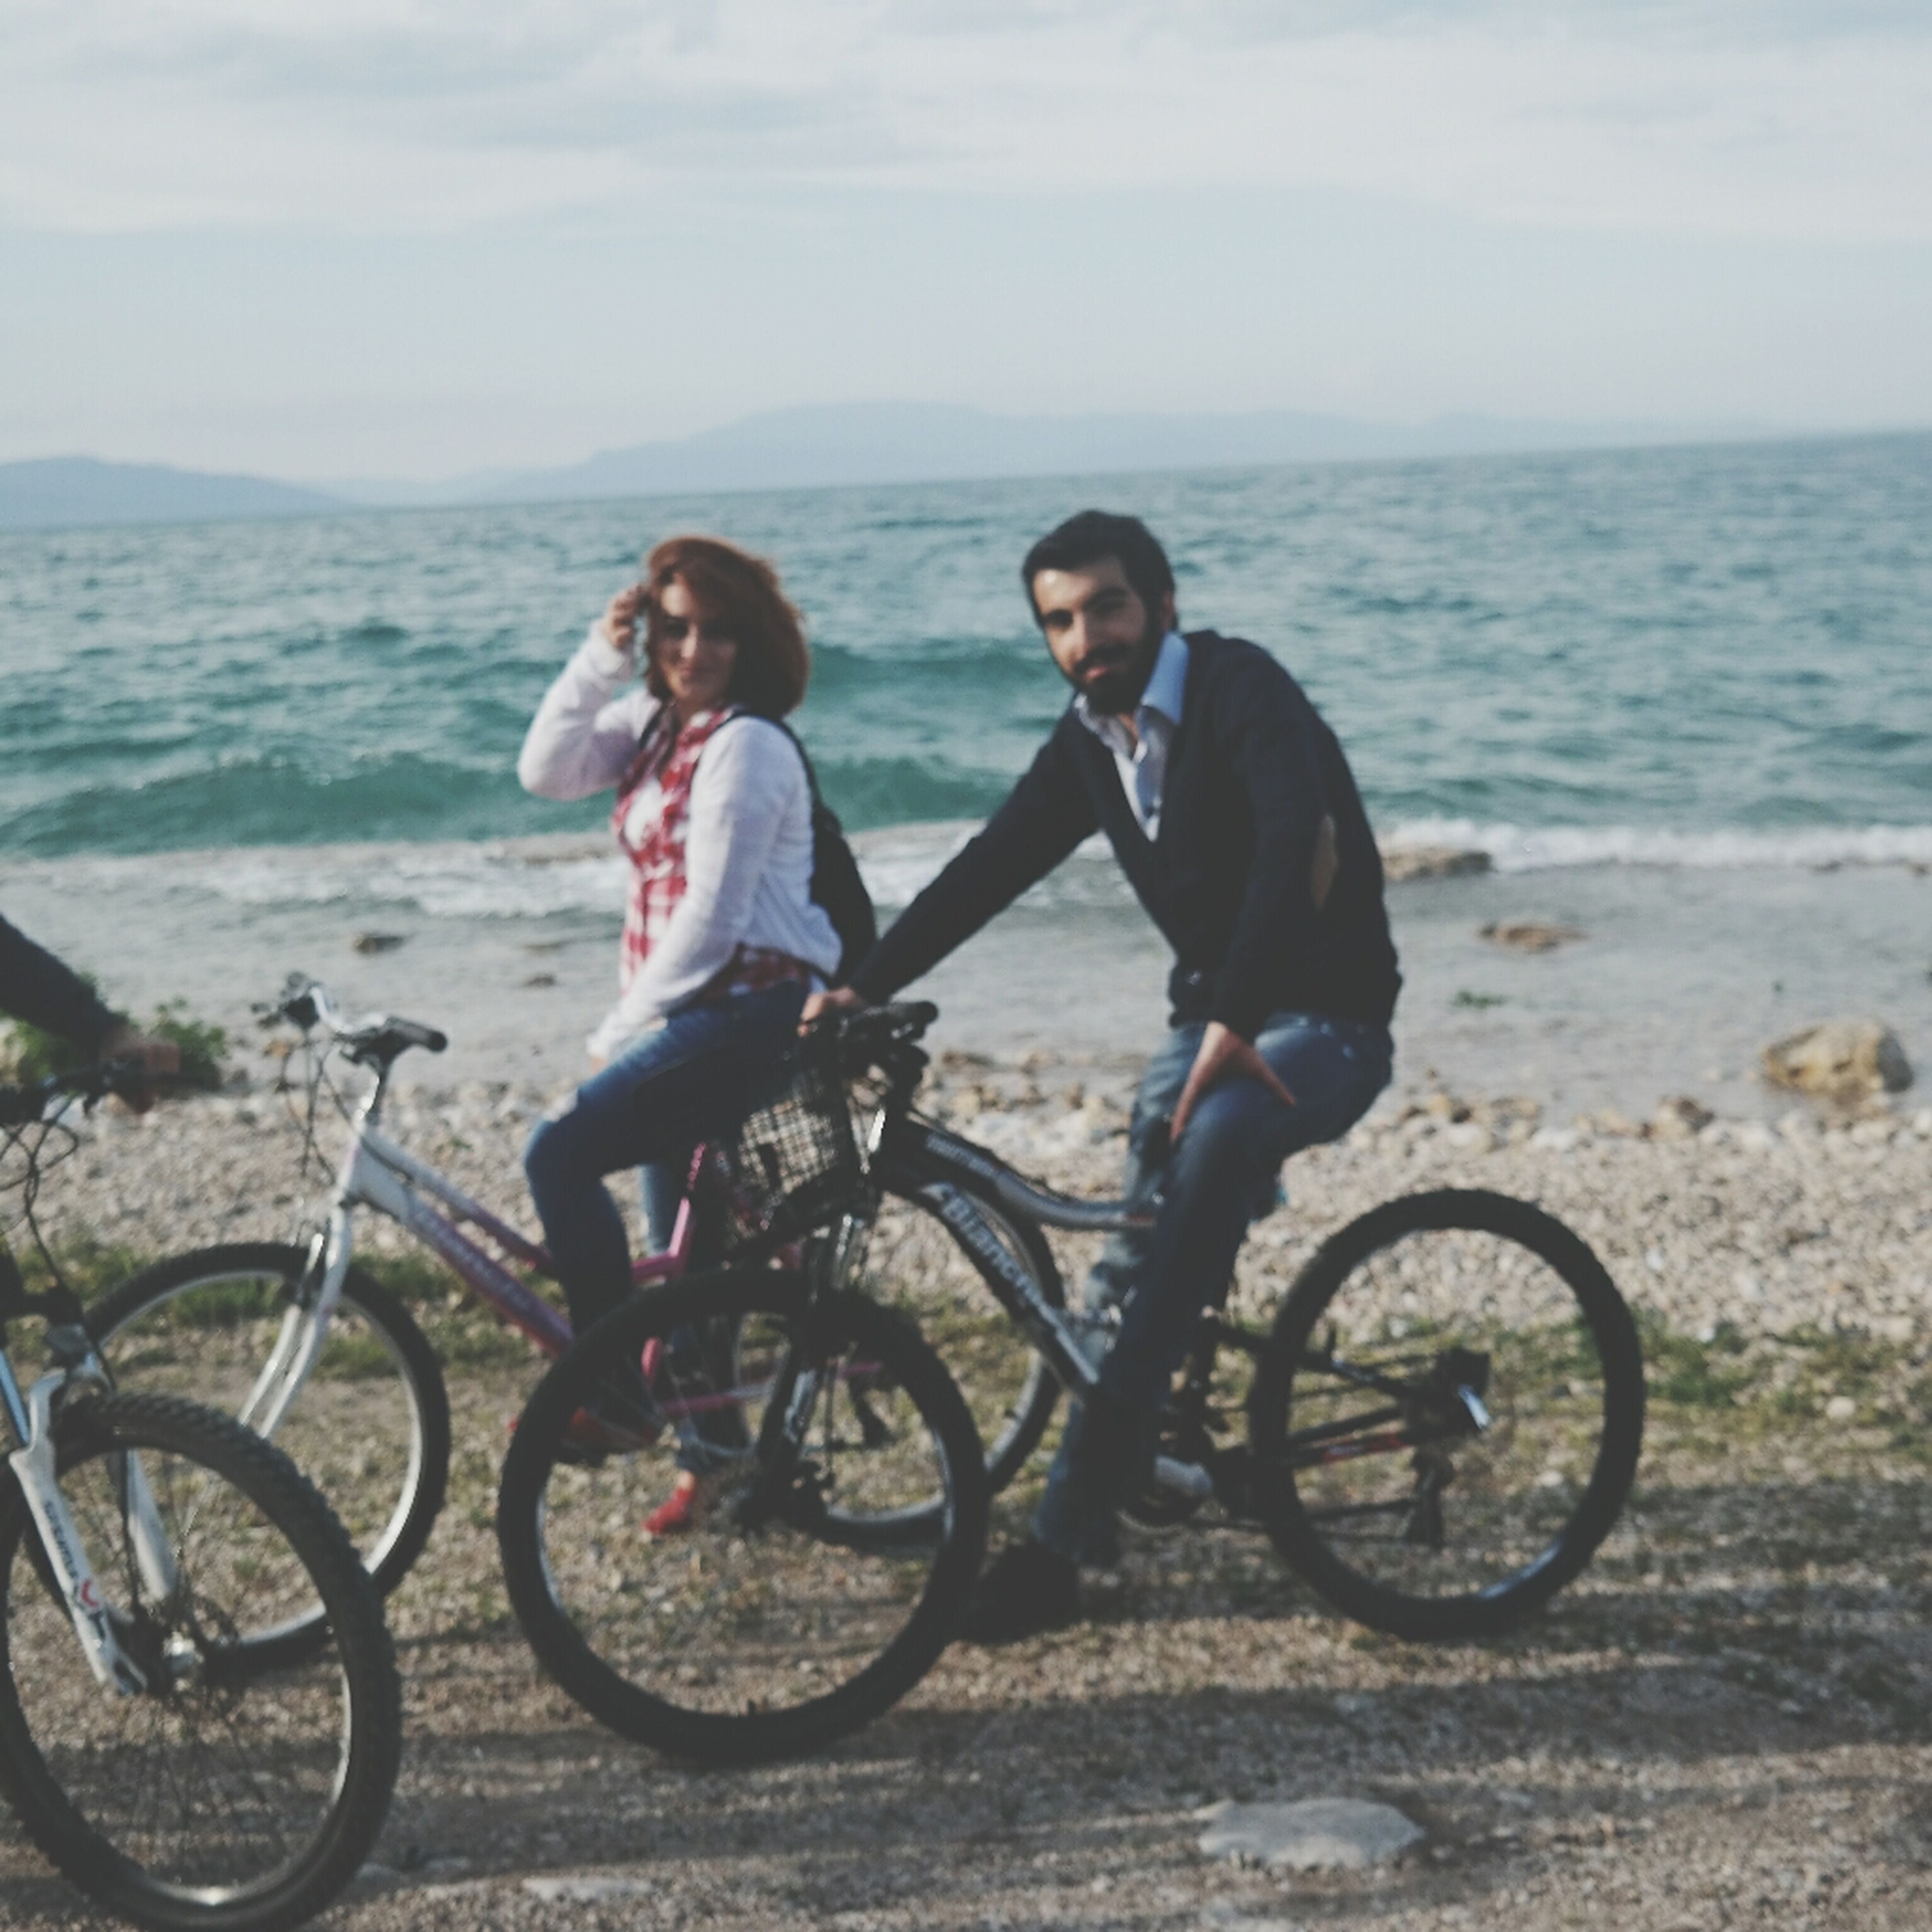 bicycle, sea, lifestyles, beach, leisure activity, full length, sky, water, mode of transport, casual clothing, transportation, shore, person, horizon over water, land vehicle, young adult, travel, sand